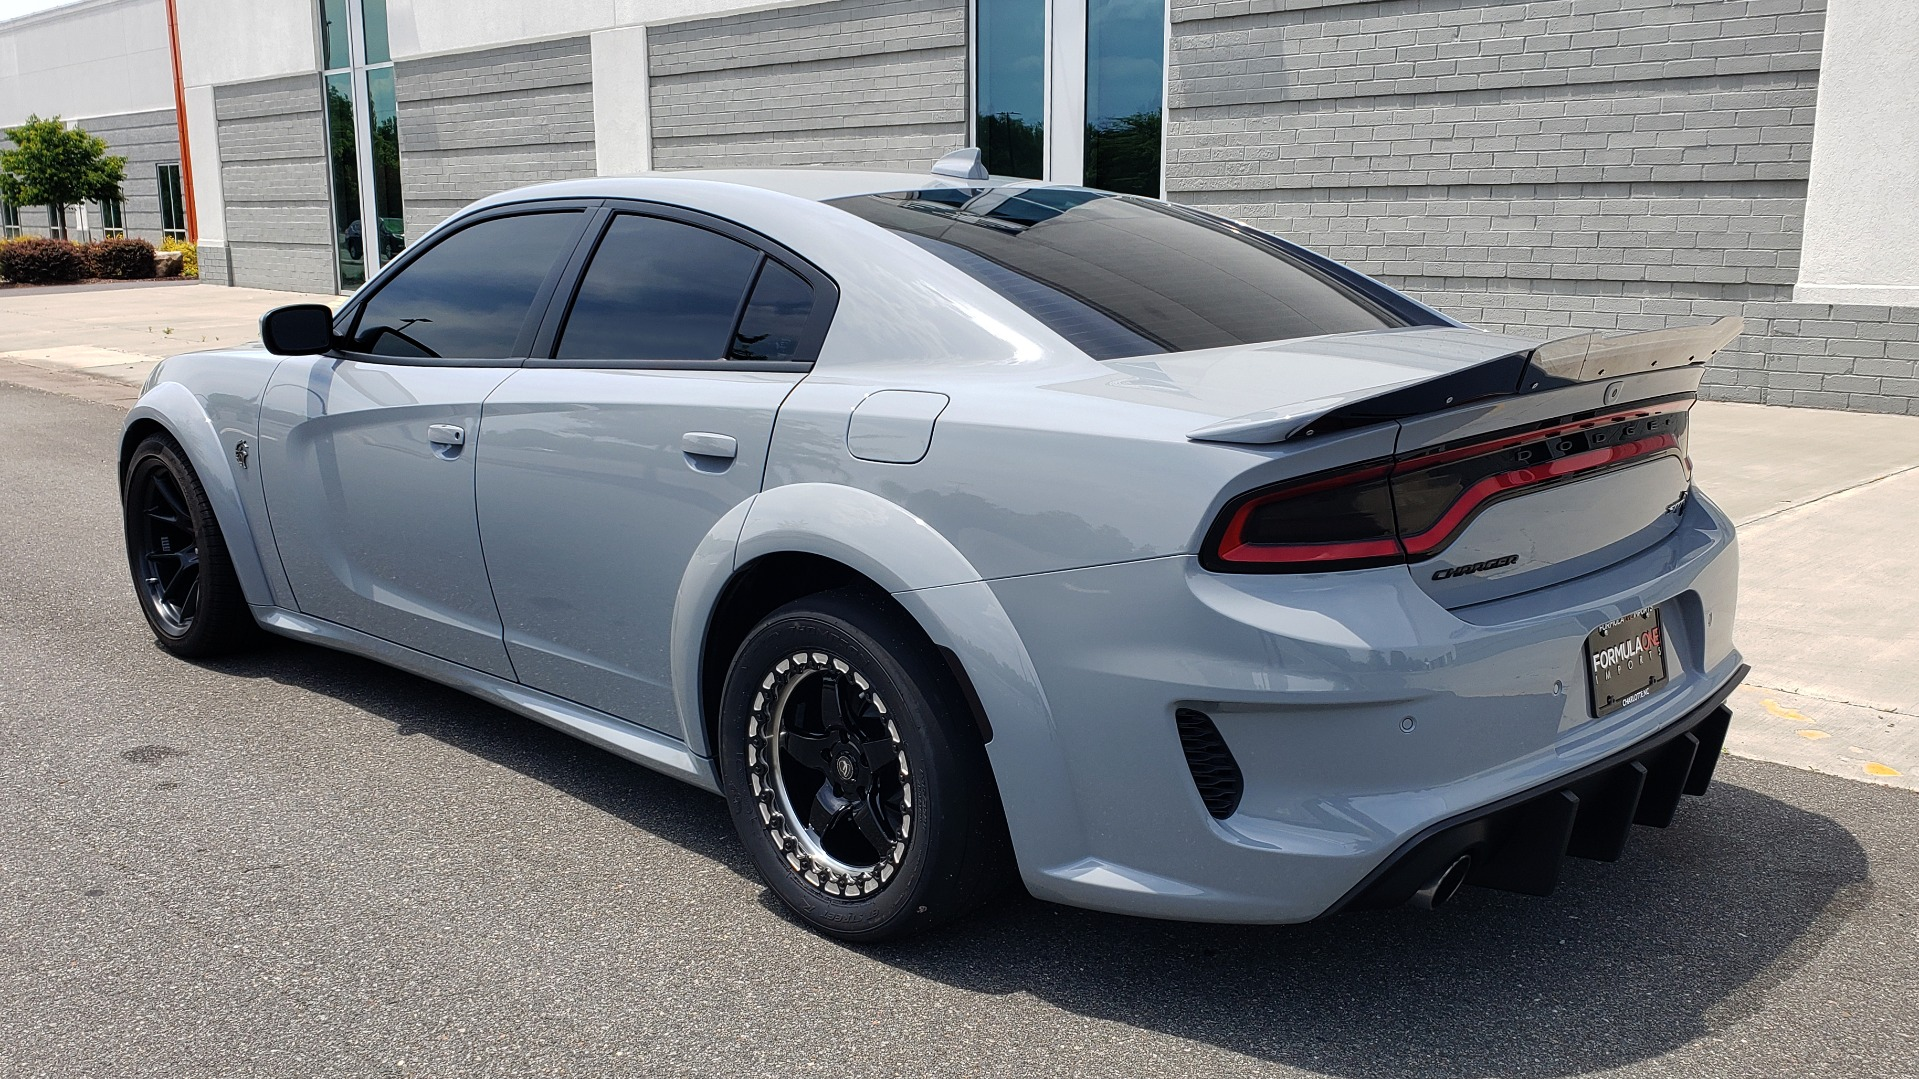 Used 2021 Dodge CHARGER SRT HELLCAT REDEYE WIDEBODY / CUSTOM TUNED 1100BHP for sale Sold at Formula Imports in Charlotte NC 28227 5